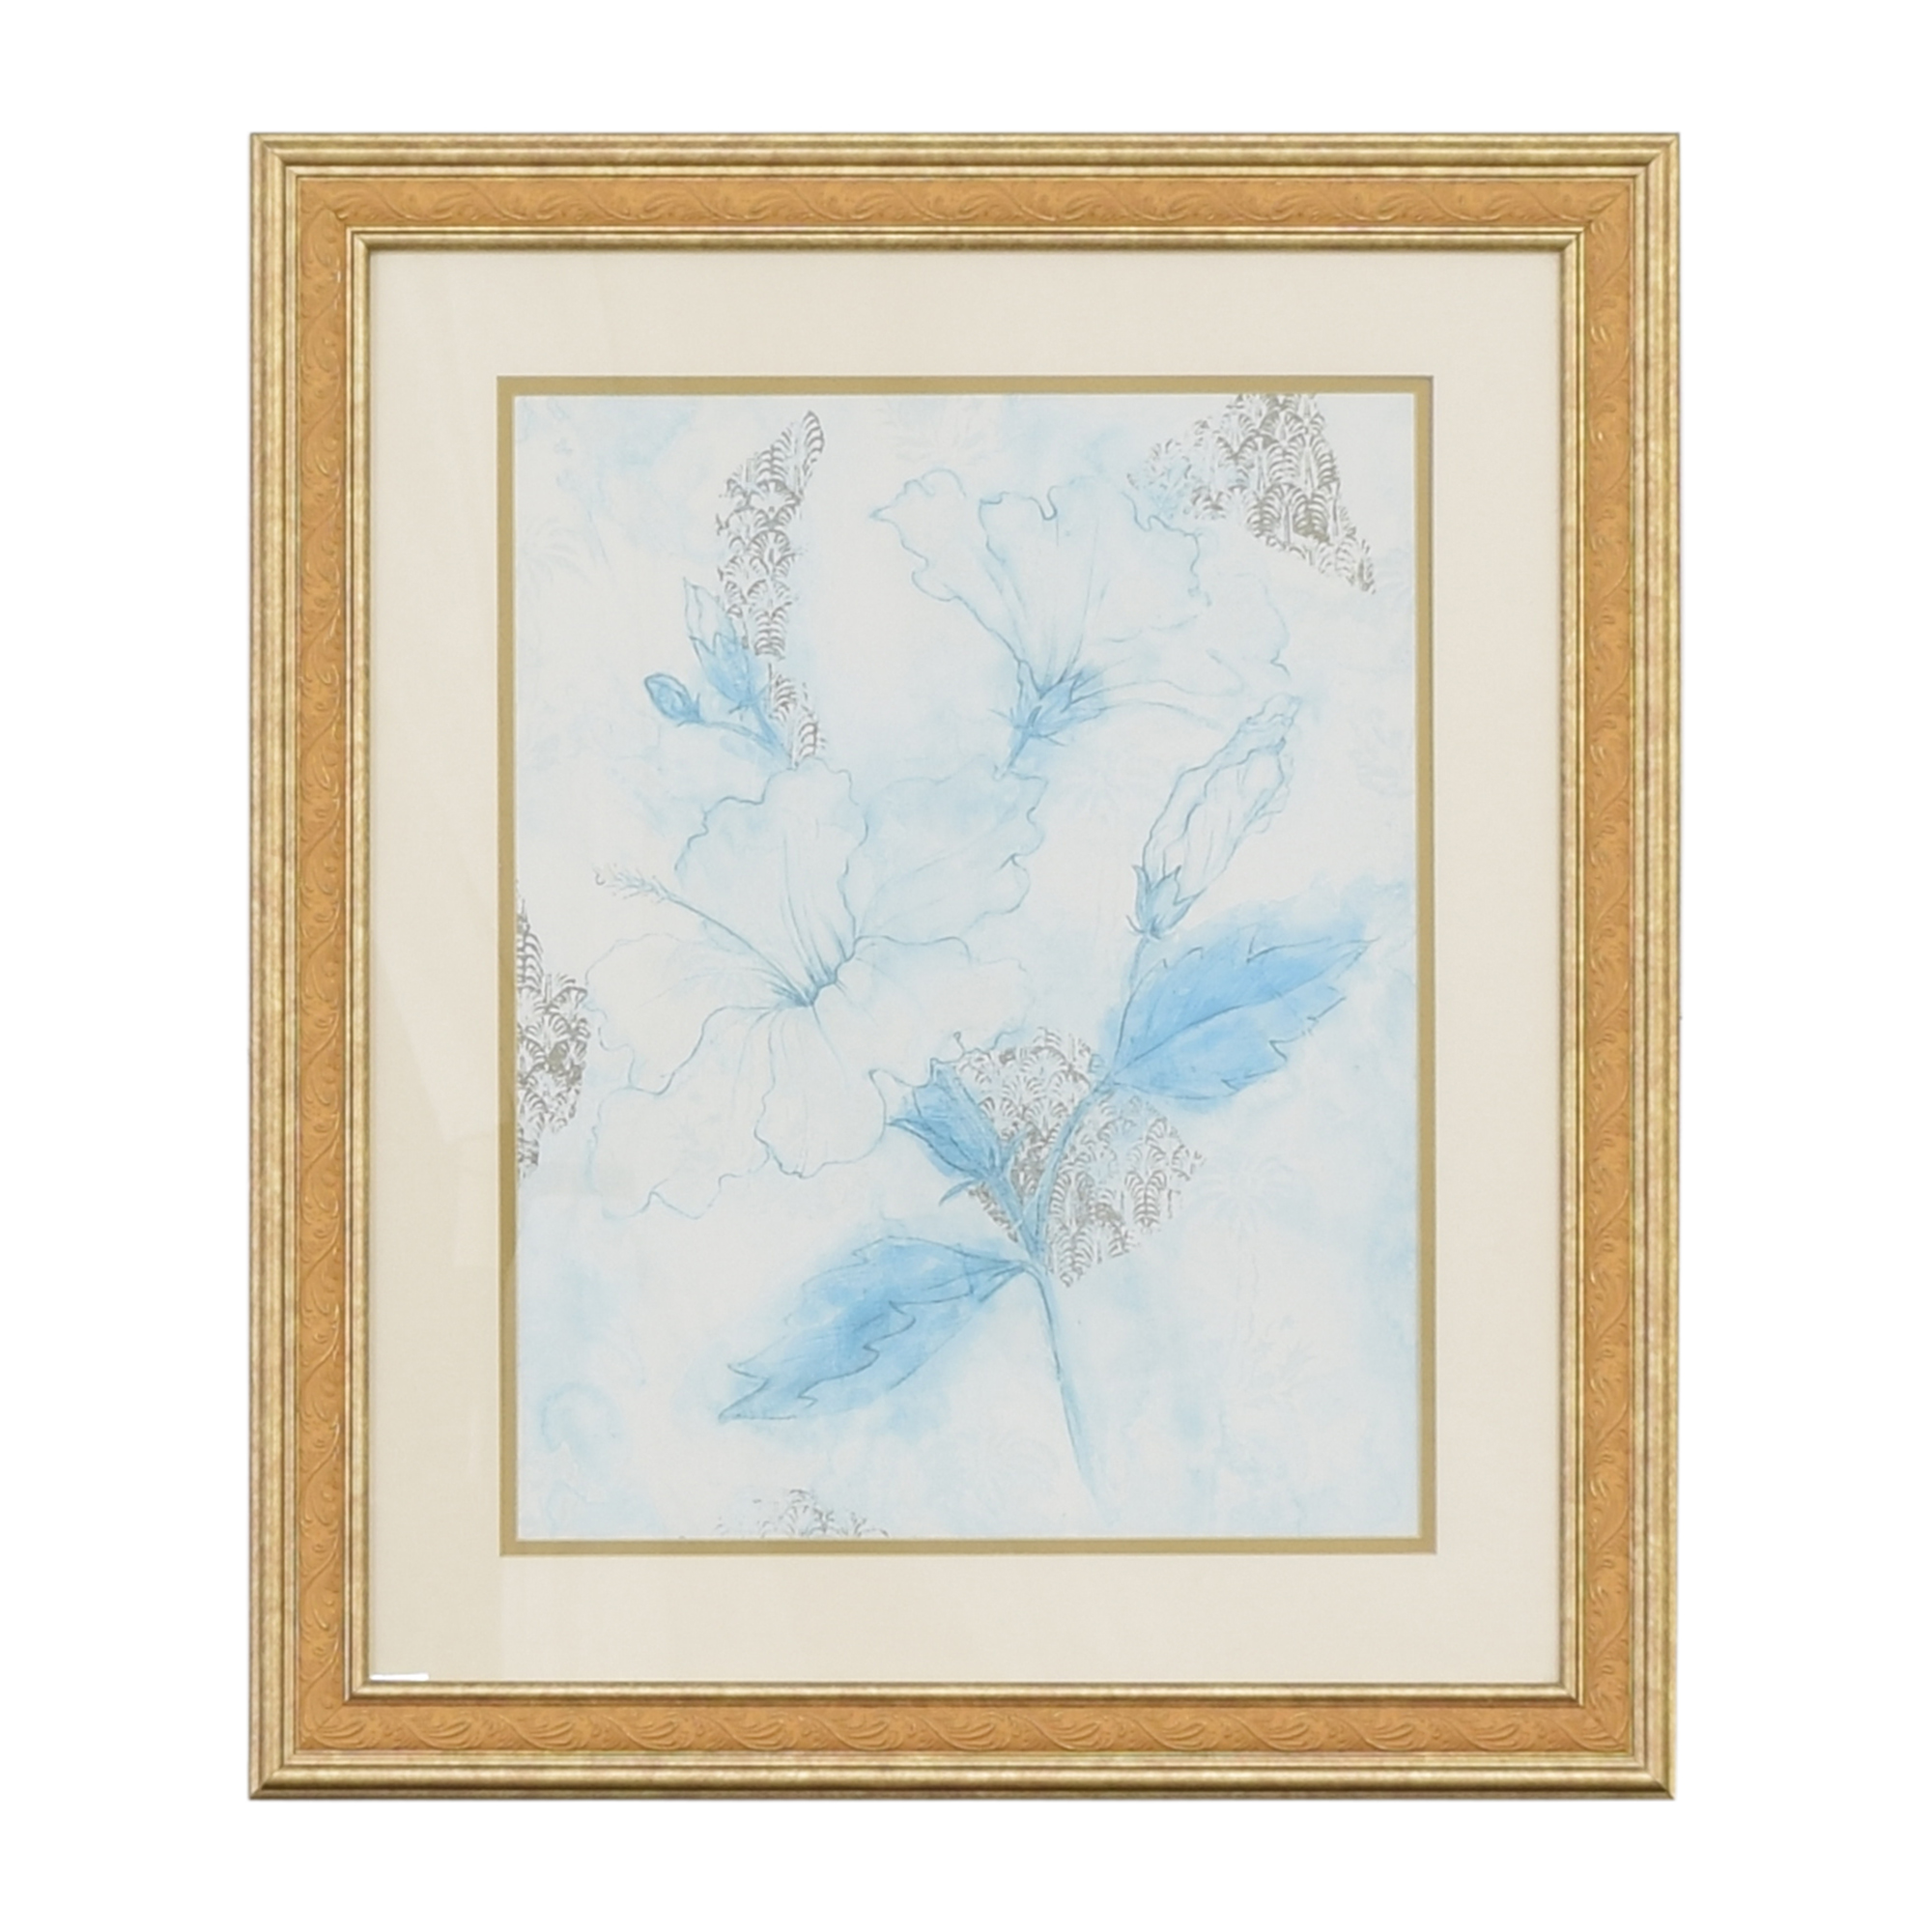 Ethan Allen Ethan Allen Framed Botanical Wall Art ct